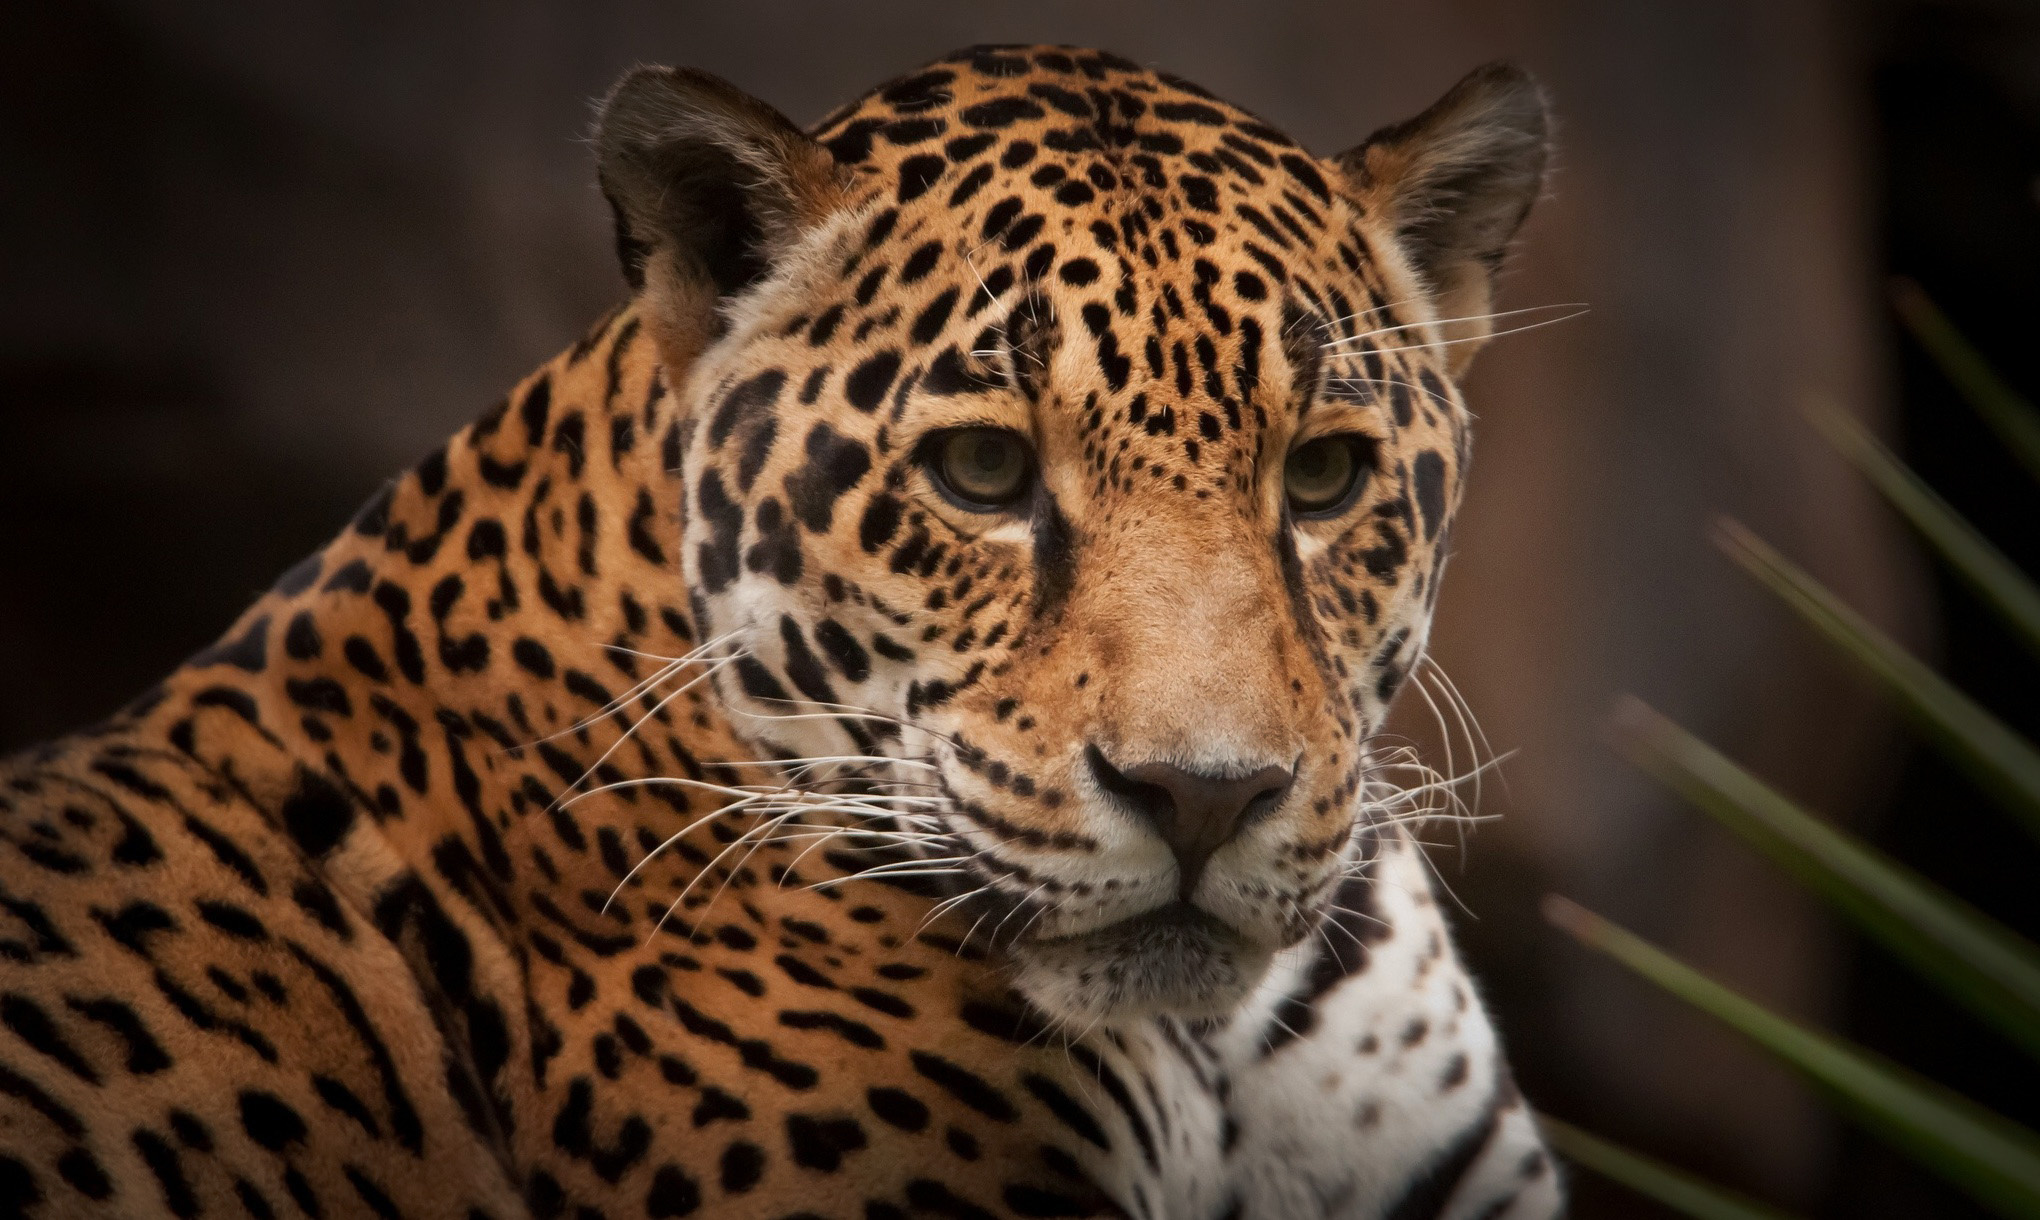 Jaguar full hd wallpaper and background image 2040x1220 - Jaguar animal hd wallpapers ...